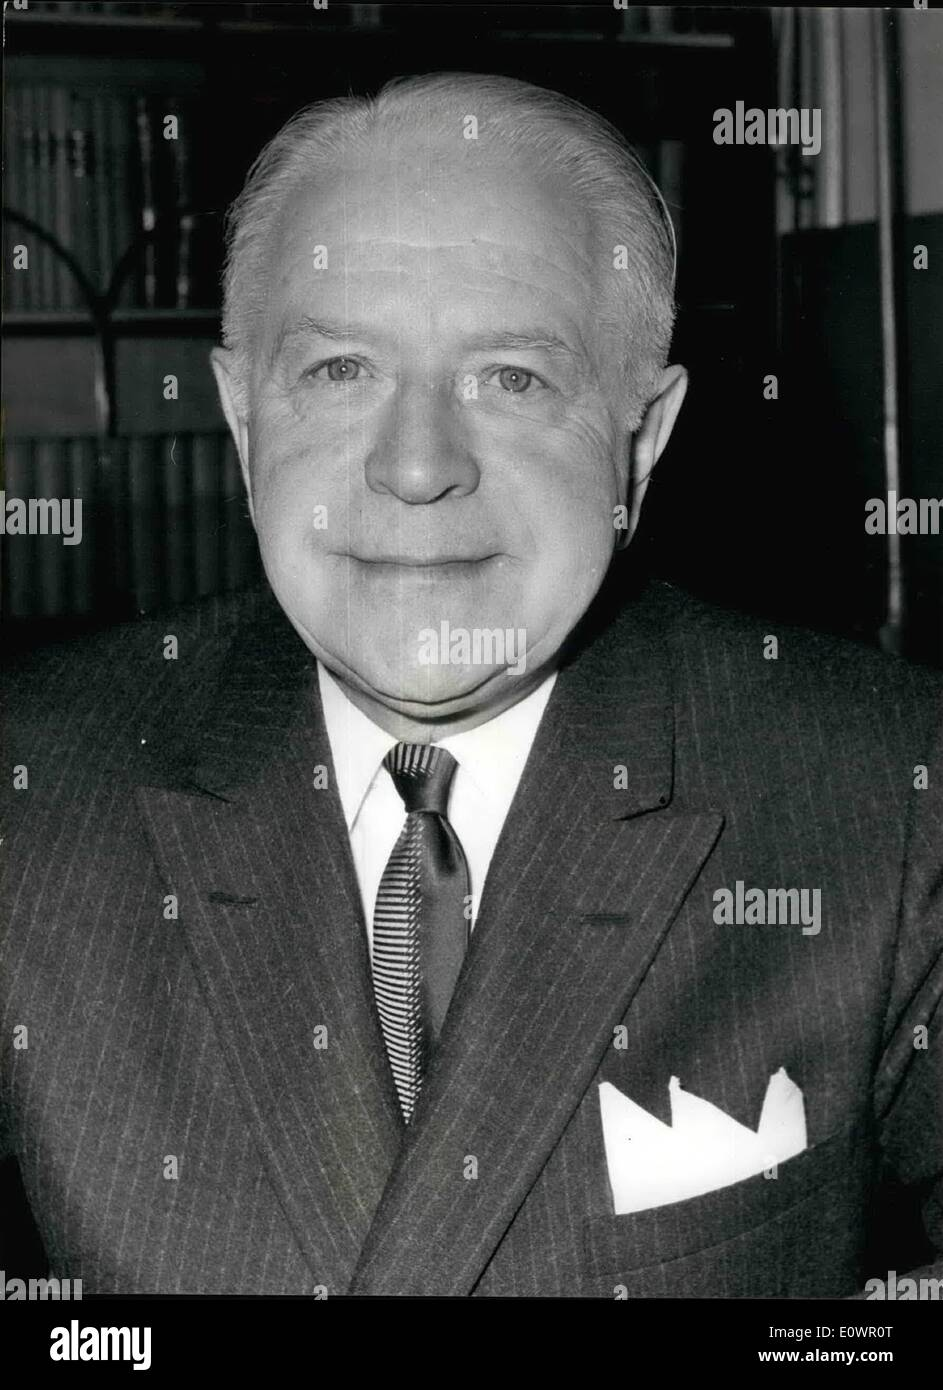 Feb. 02, 1964 - New High Commissioner for Canada.: The Honourable Lionel Chevrier, the new High Commissioner for - Stock Image